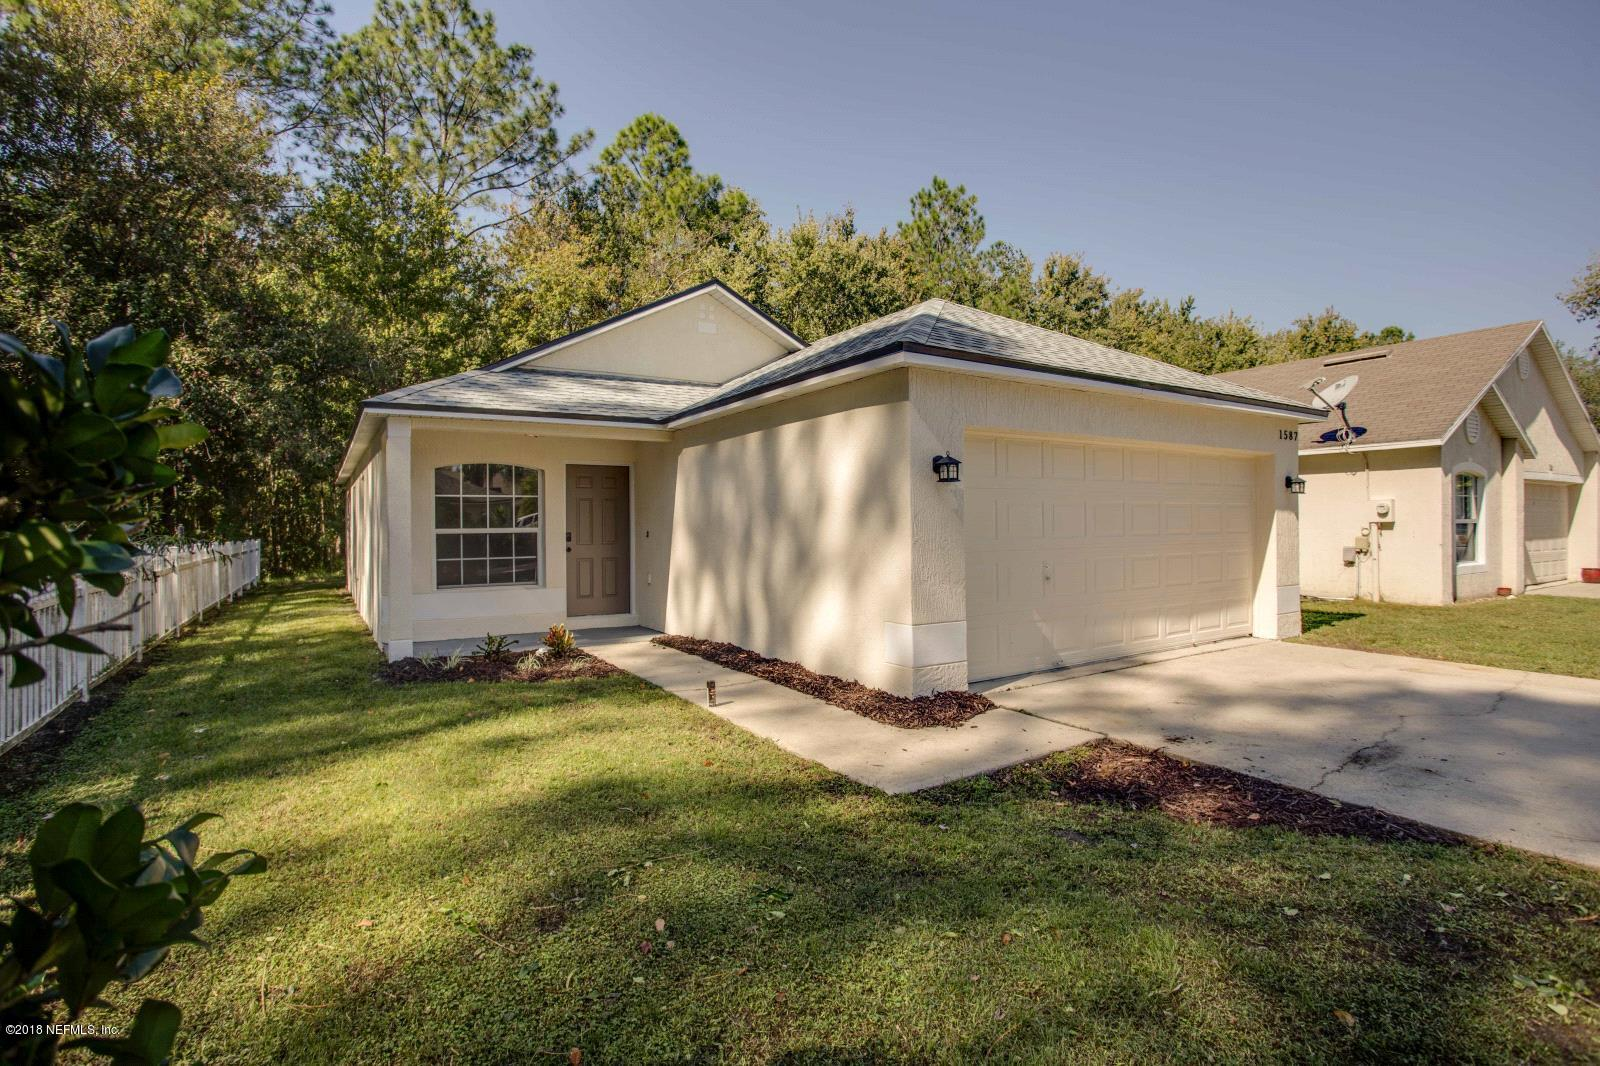 1587 SLASH PINE, ORANGE PARK, FLORIDA 32073, 3 Bedrooms Bedrooms, ,2 BathroomsBathrooms,Residential - single family,For sale,SLASH PINE,965274